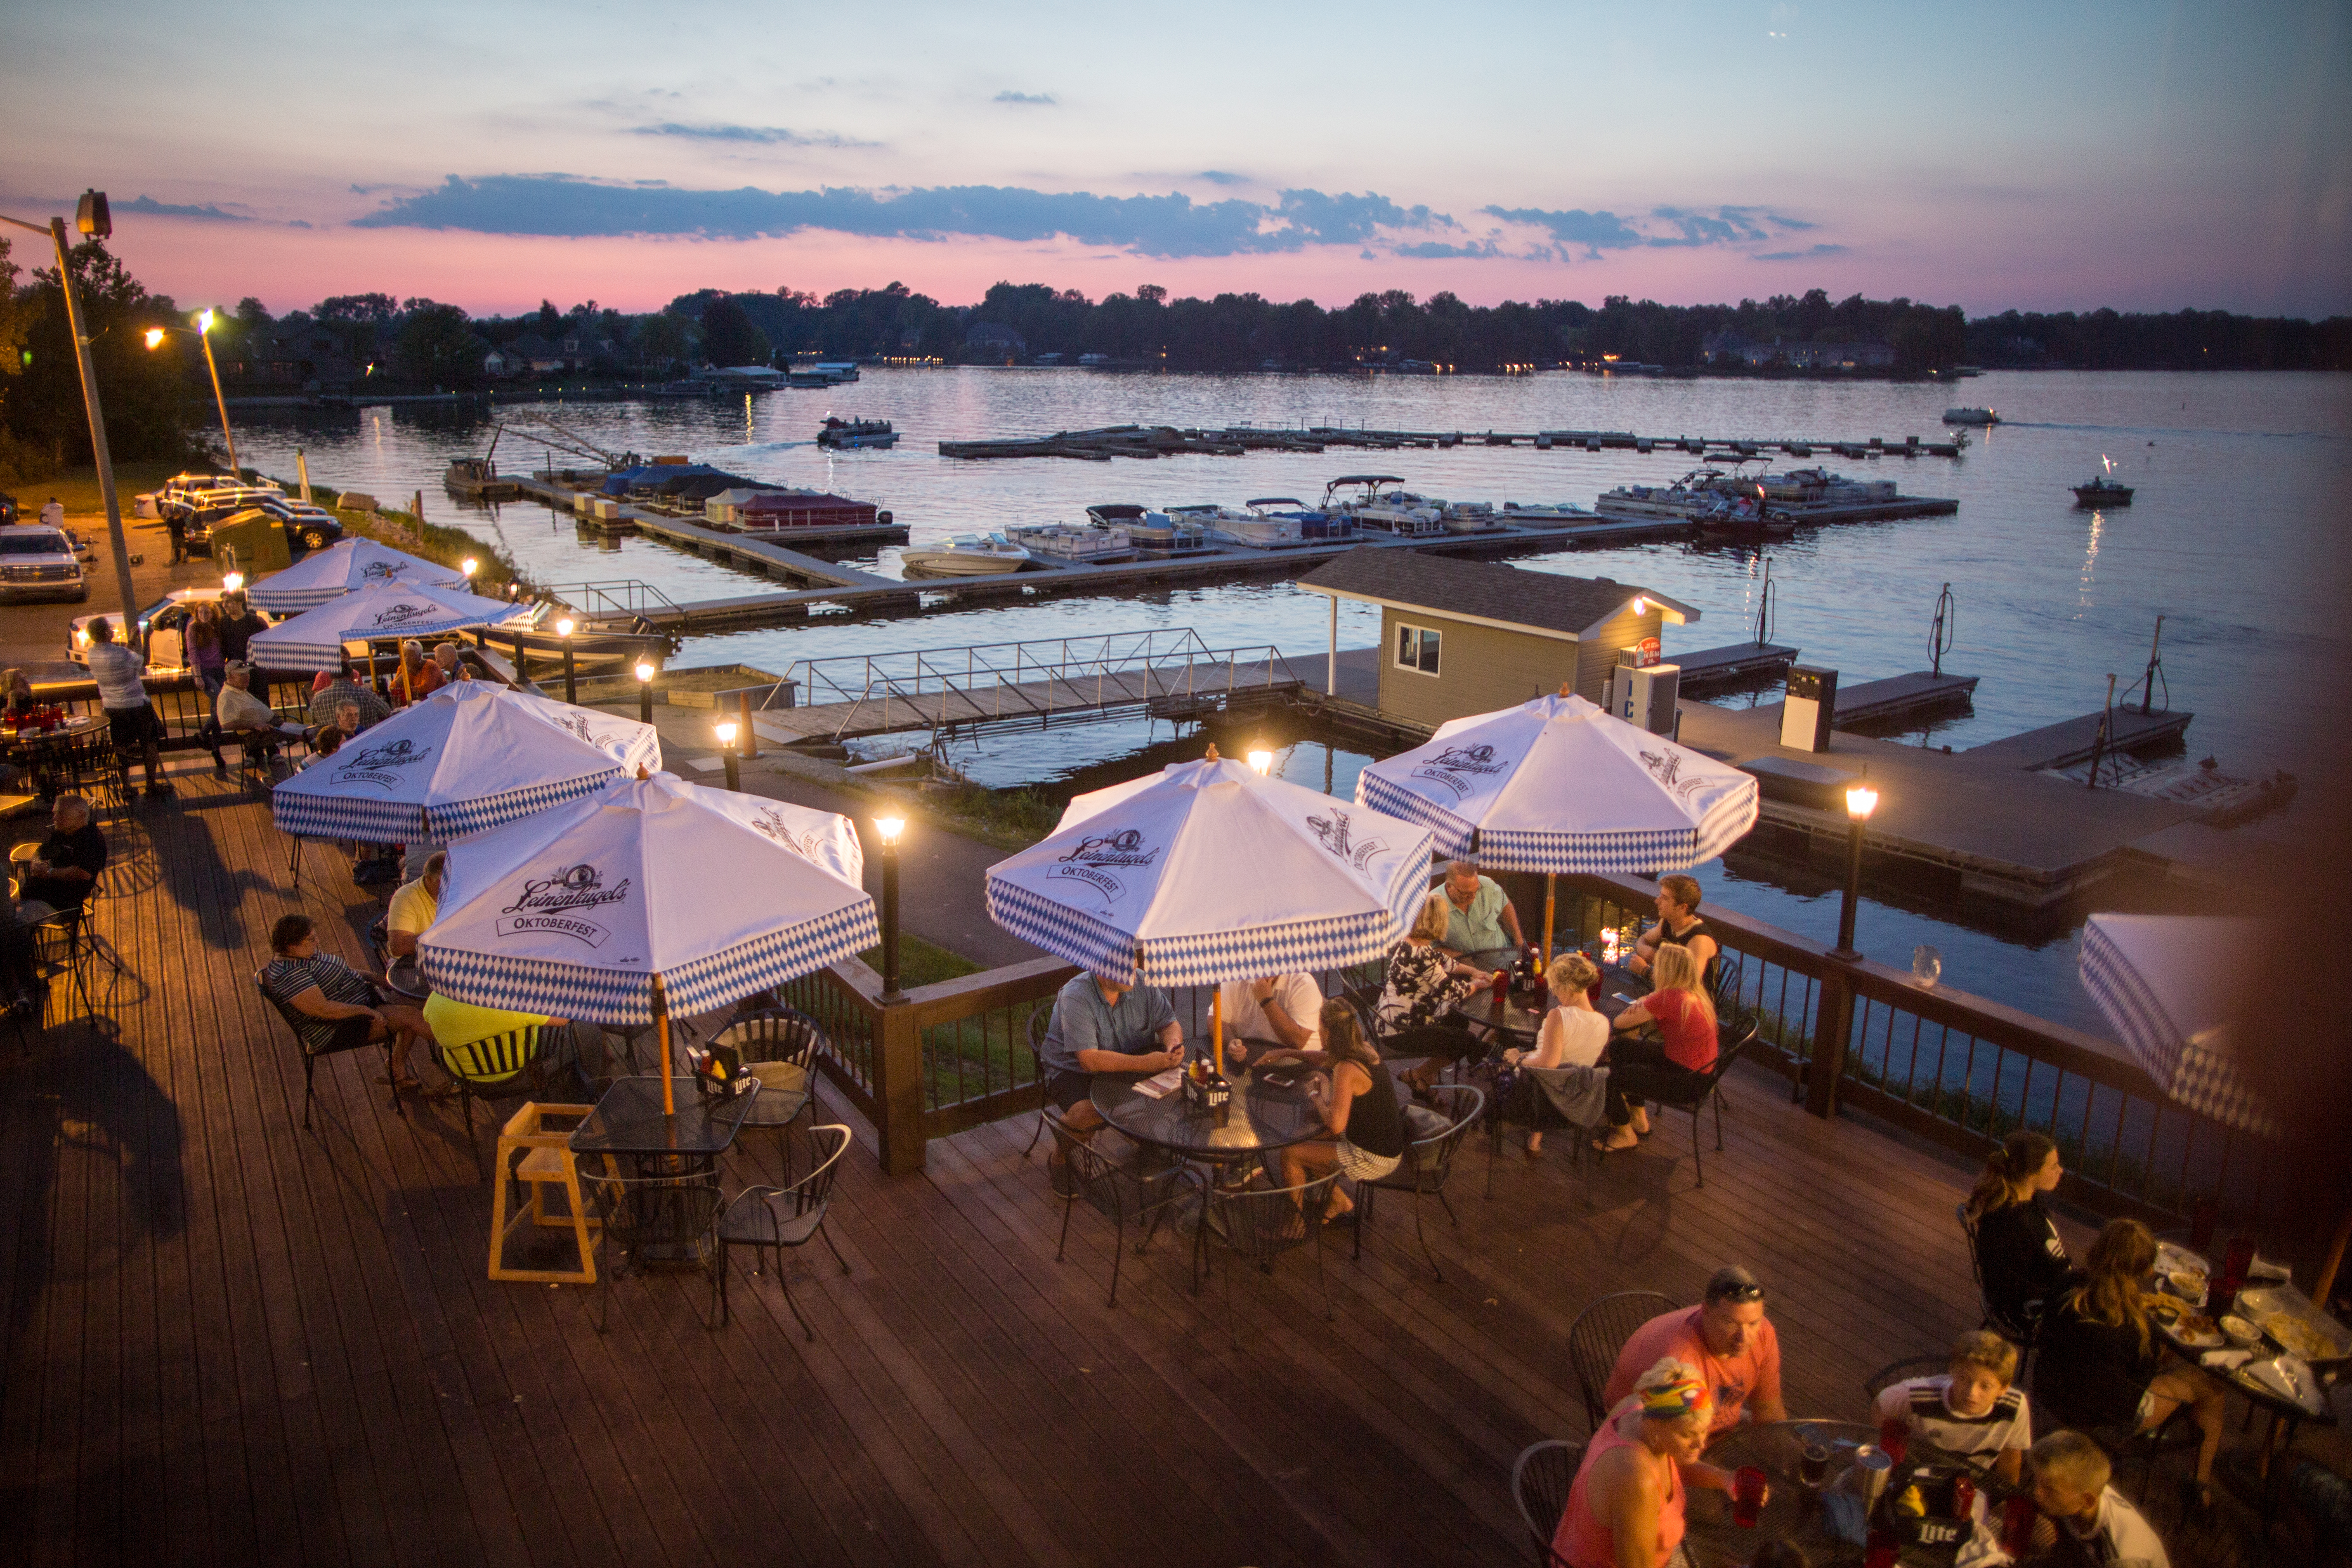 Wolfies Grill - waterside diningPhoto by: Zach Dobson - 2018 Brand Images